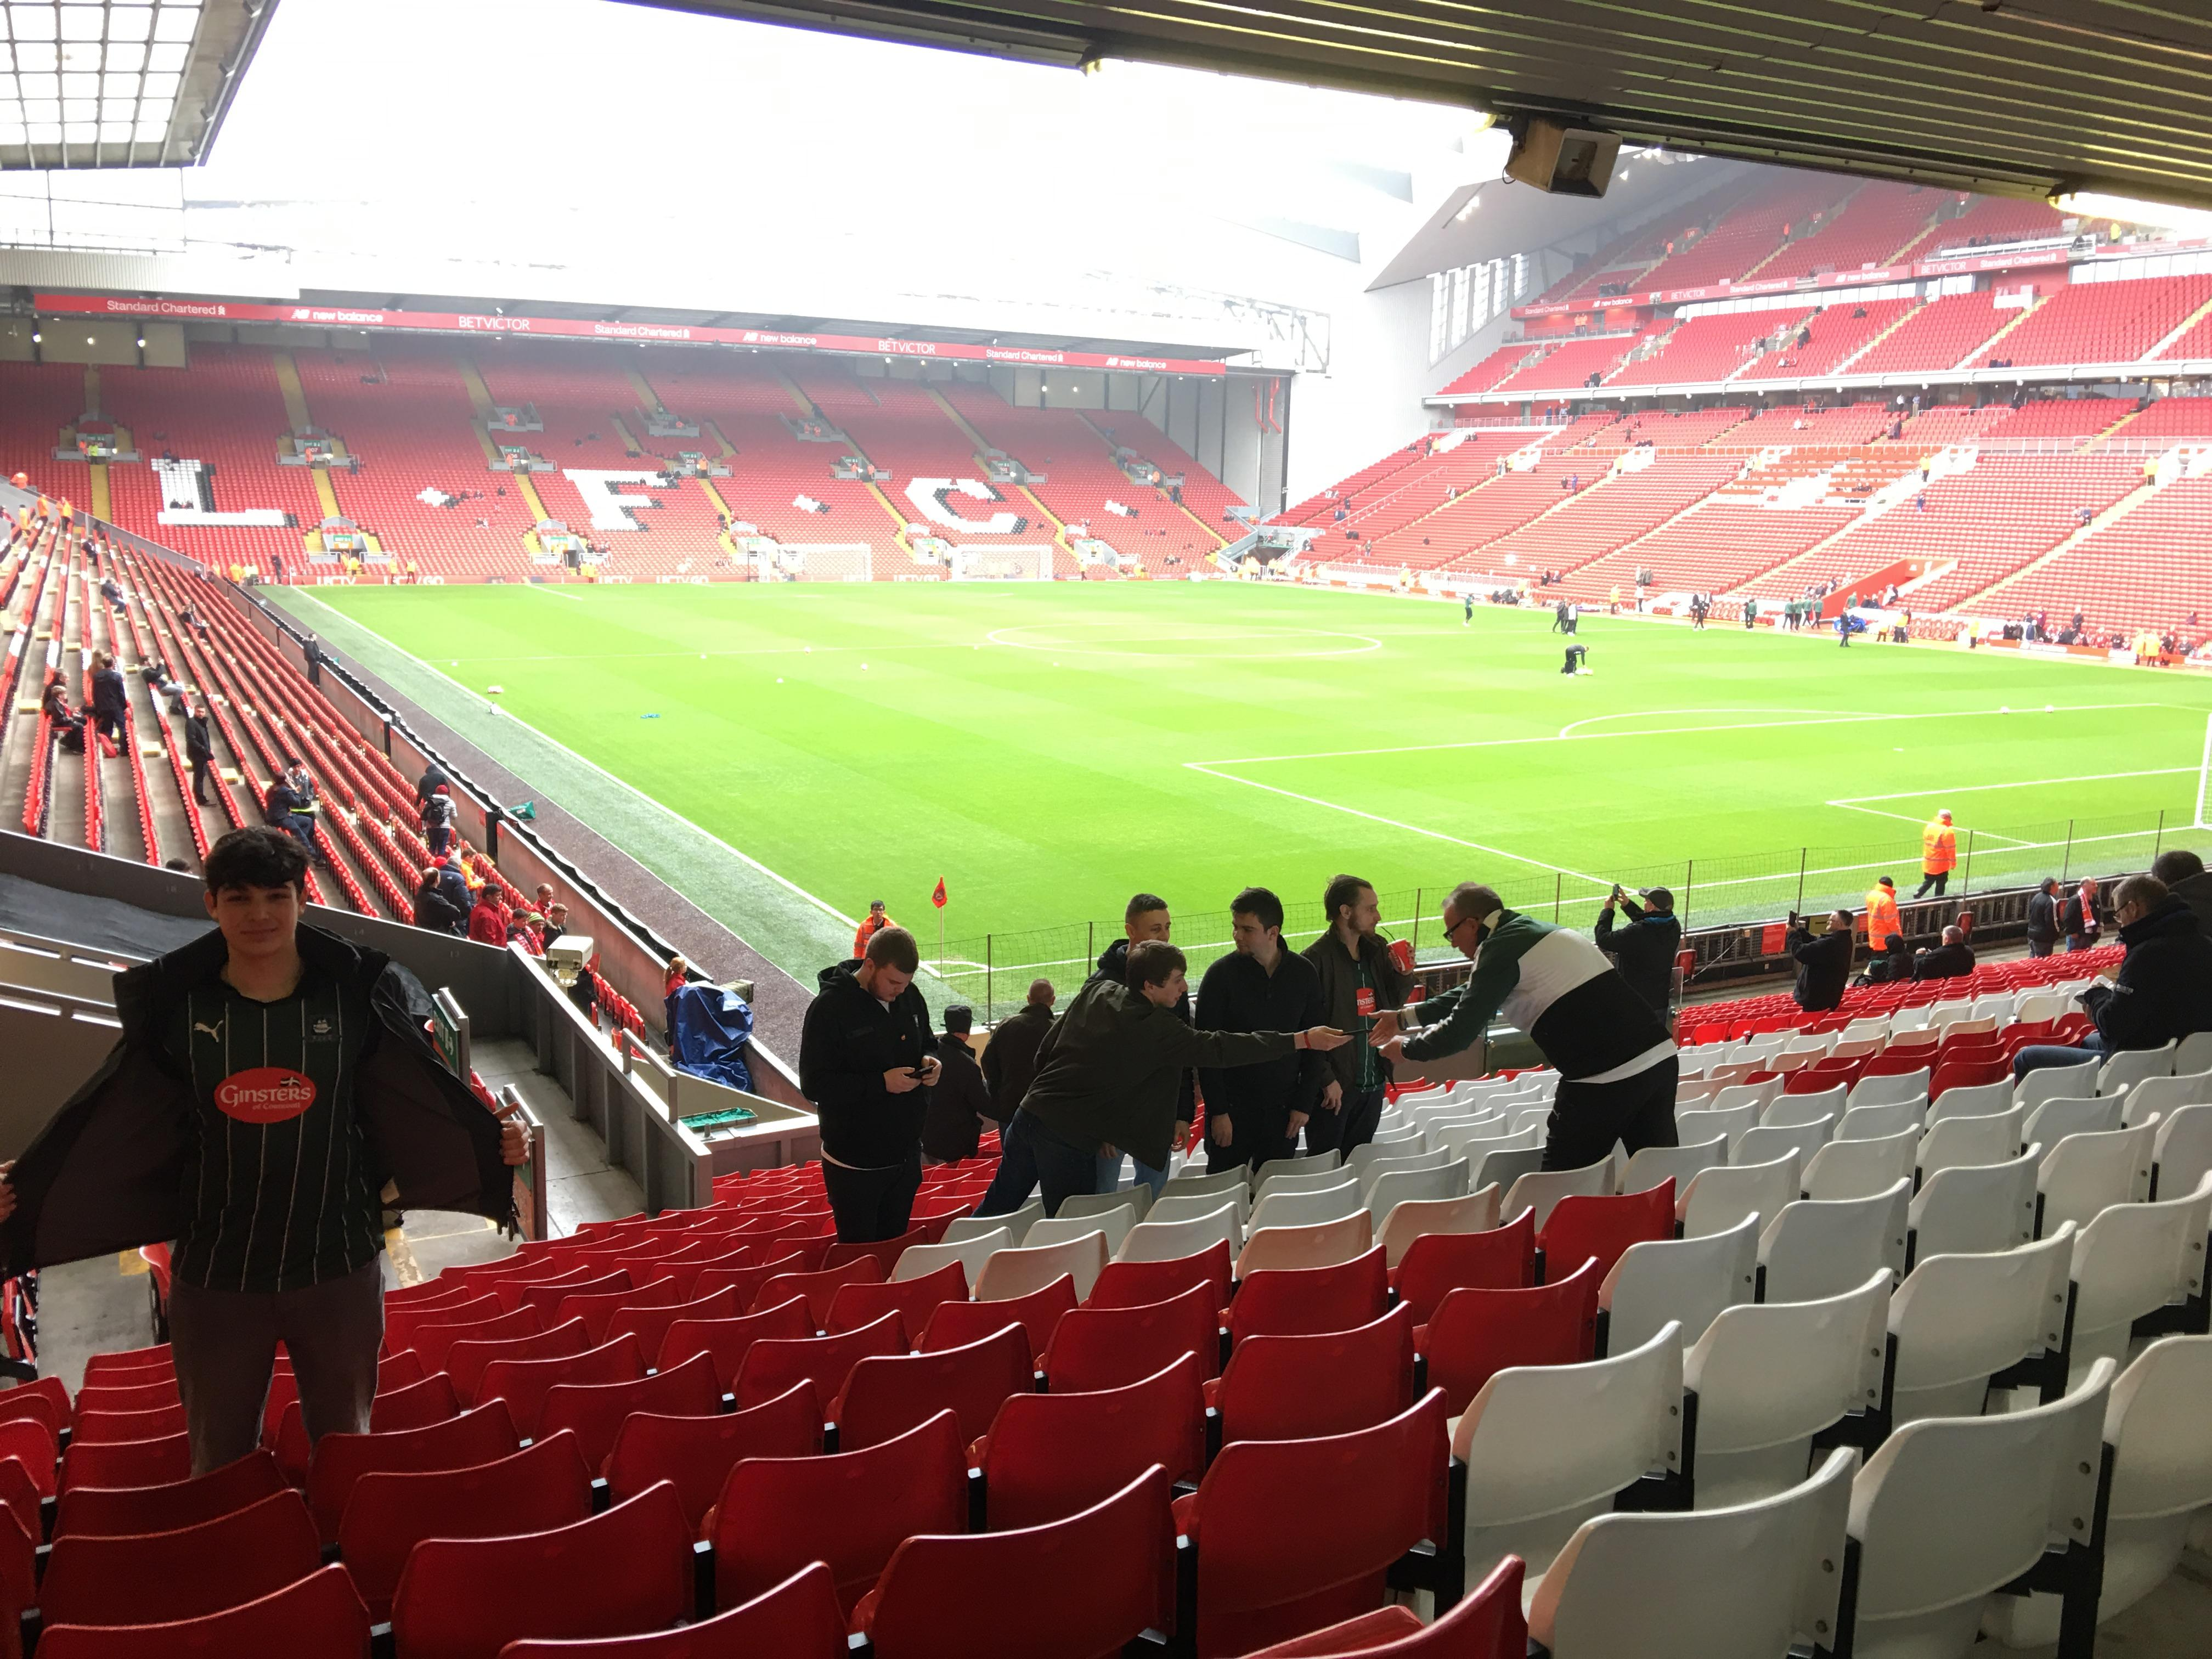 Anfield Section 129 Row 29 Seat 201